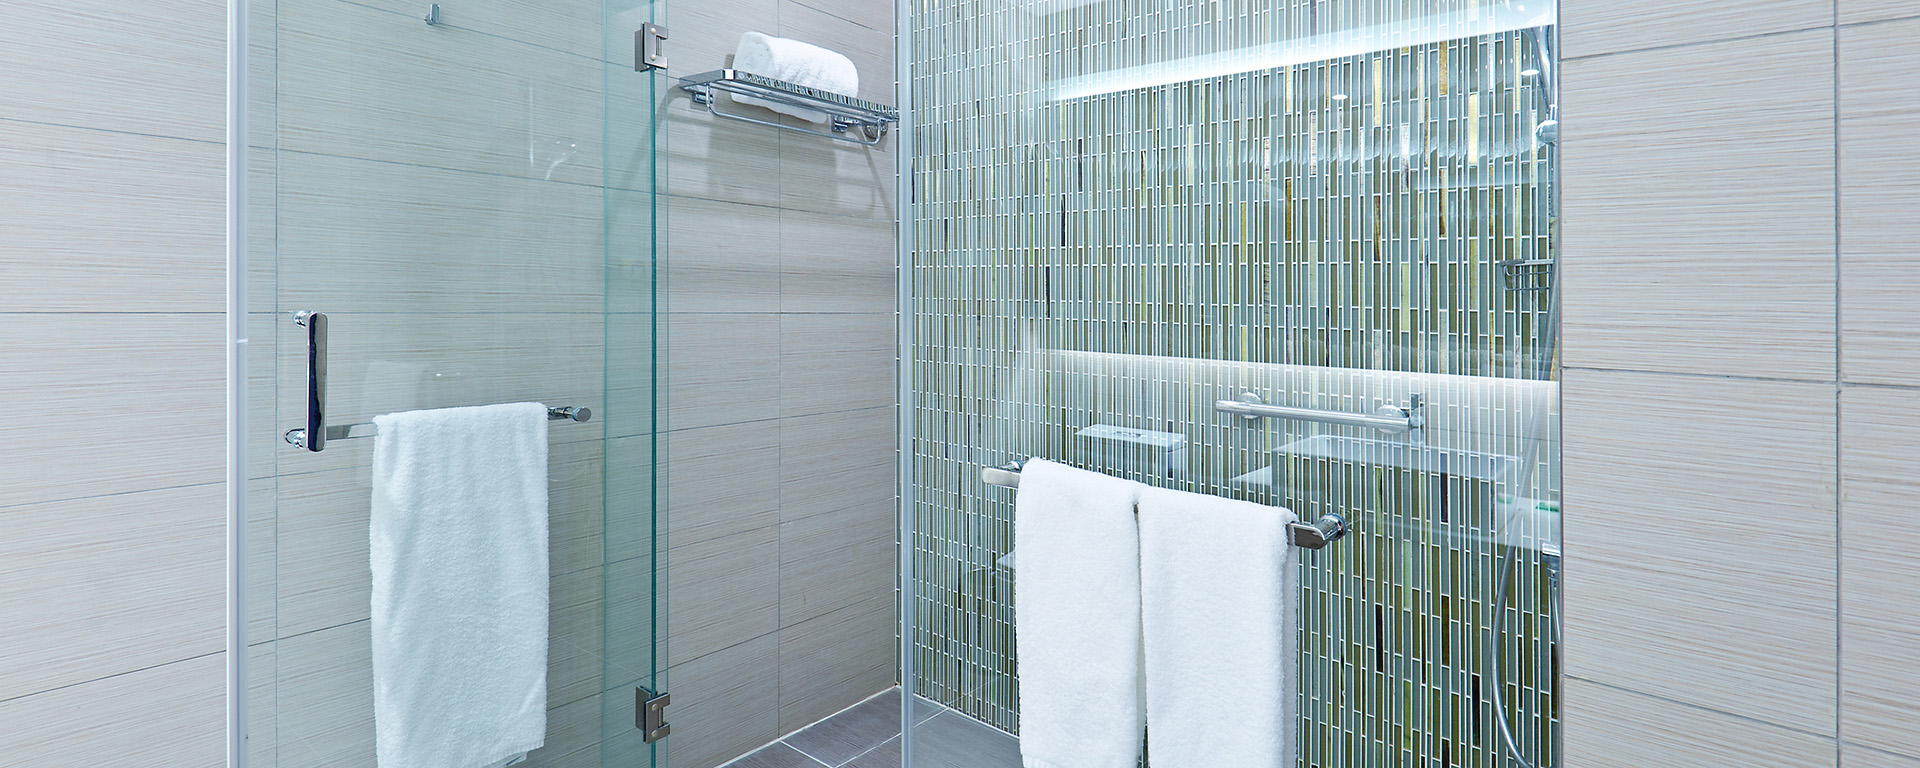 Tile in a shower enclosed with tempered glass